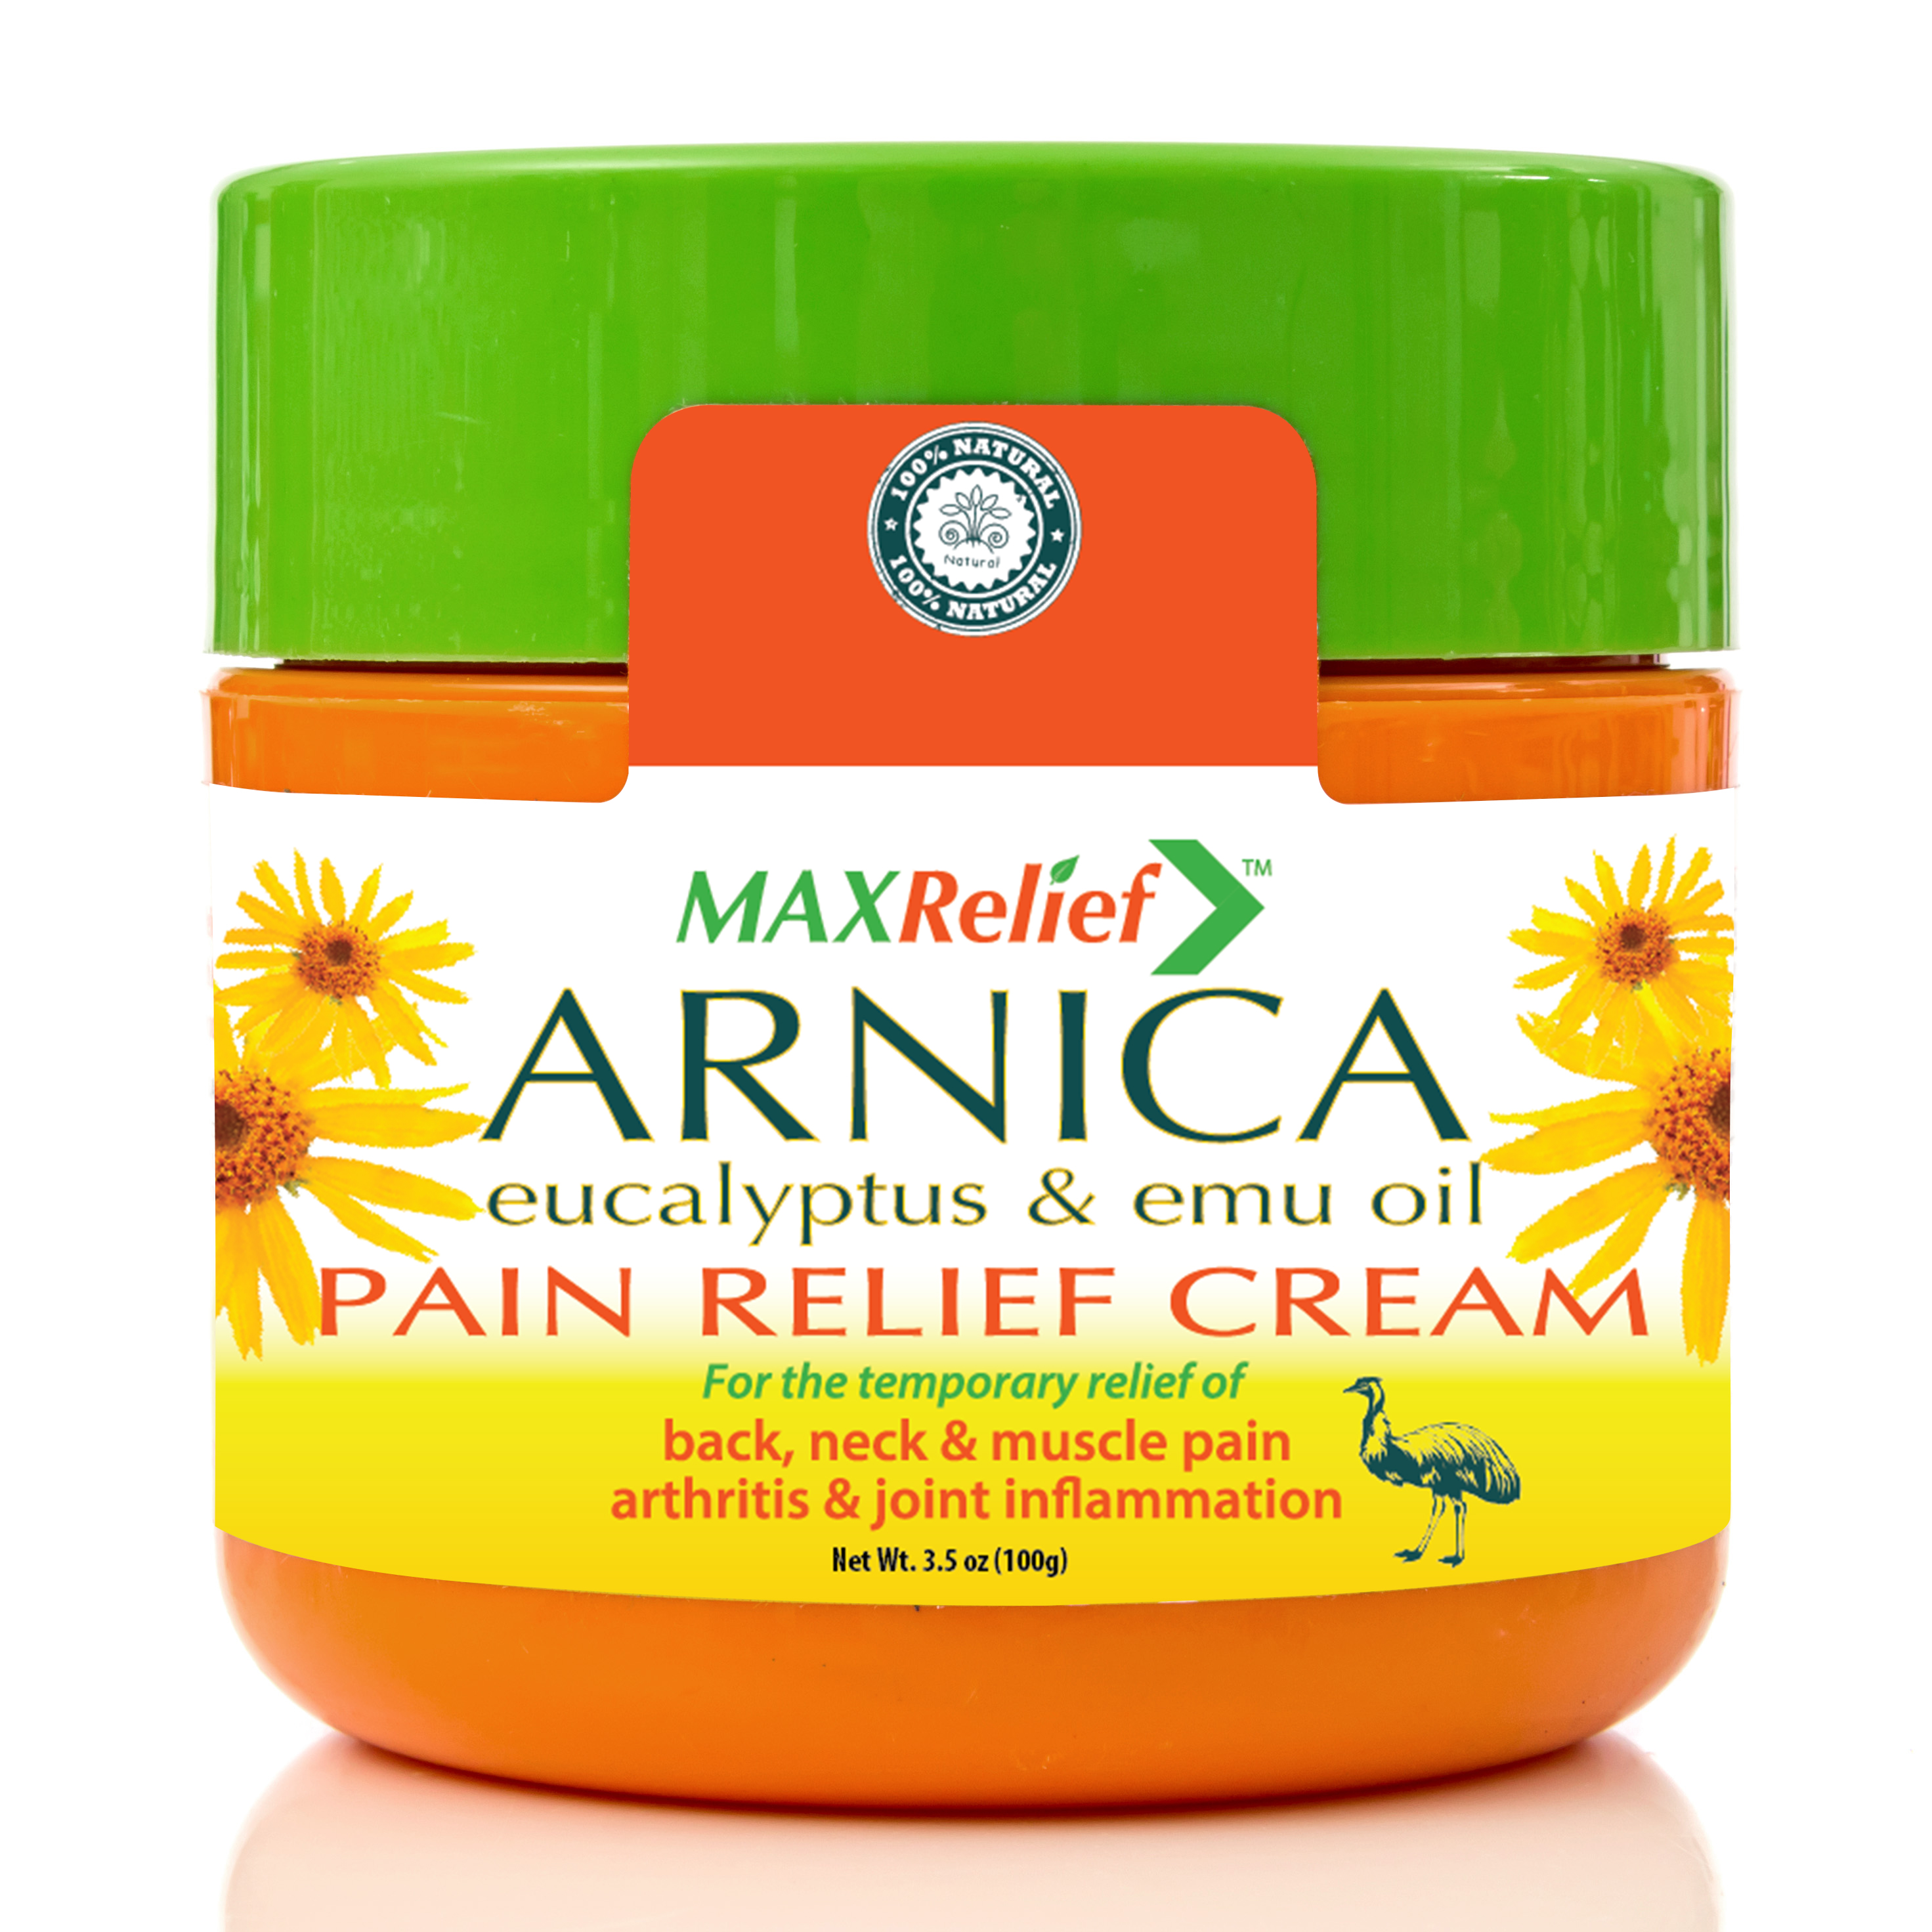 MaxRelief Arnica Pain Relief Cream - Australia's #1 - For Sufferers of Back, Neck, Knee, Joint & Muscle Pain. Reduces Arthritis & Joint Inflammation, Sciatica & Fibromyalgia pain treatment. 3.5 oz